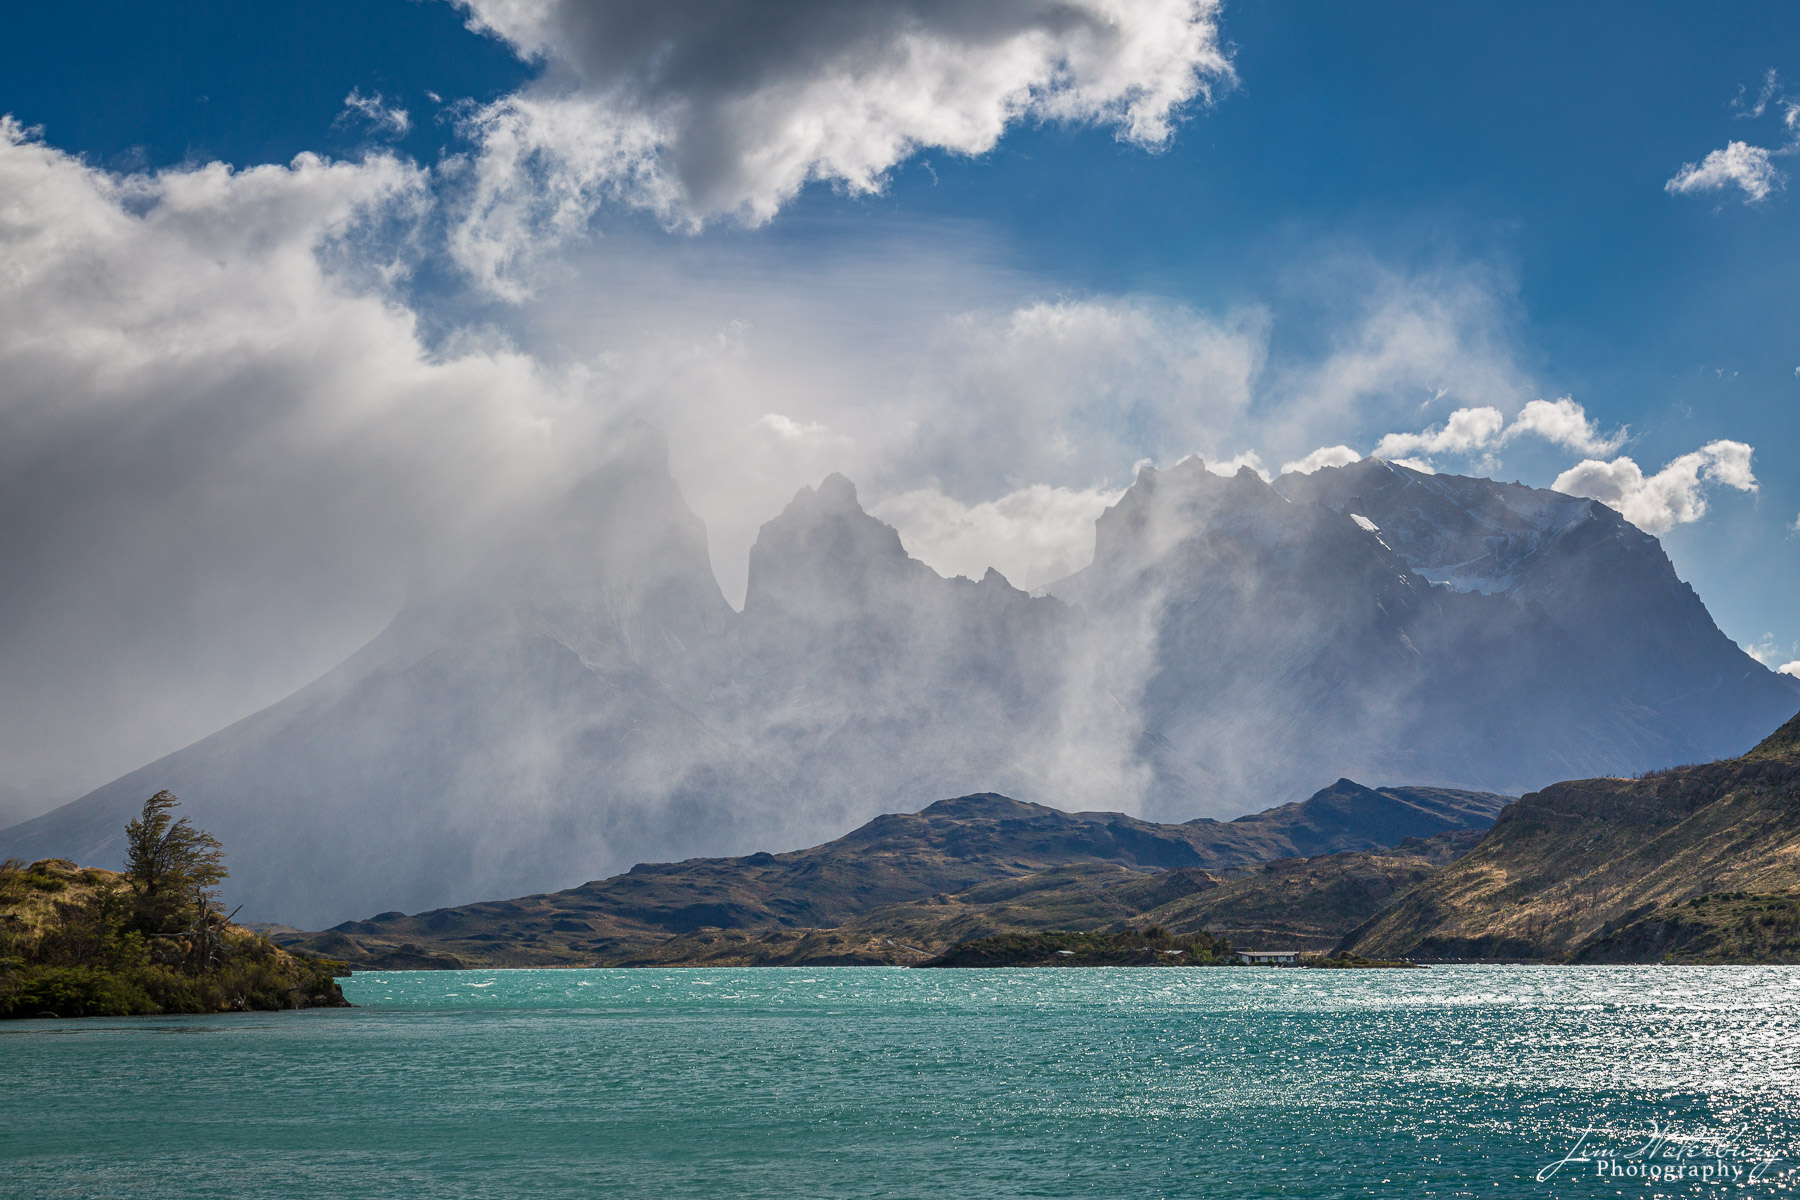 rain, storm, Lake Pehoe, Torres del Paine, Patagonia, photo